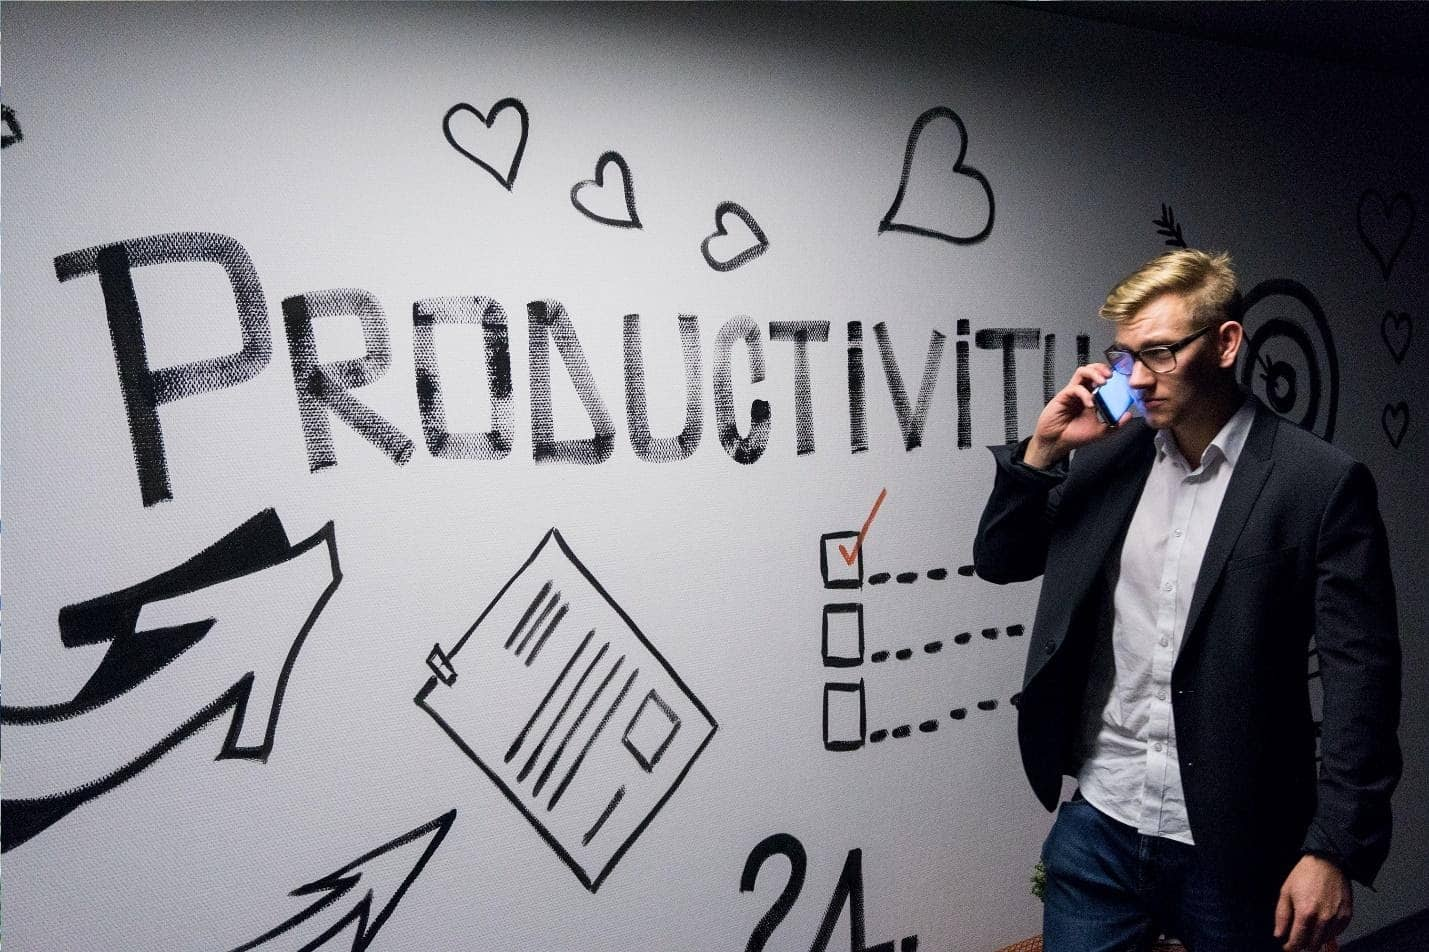 Man walks by productivity written on the wall